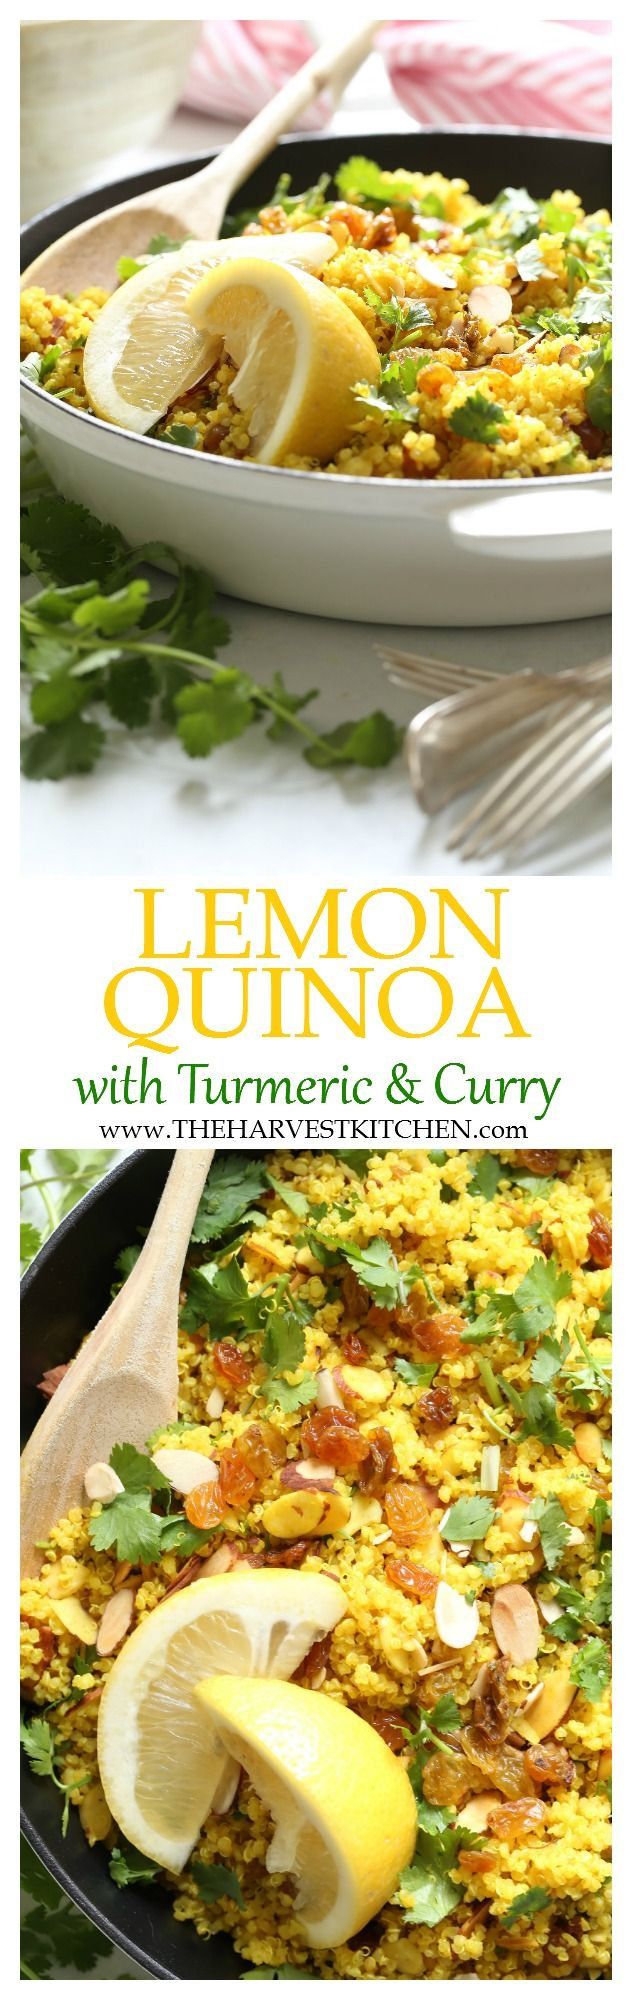 This Lemony Quinoa has a fresh delicious combo of flavors. It's lightly spiced with curry, turmeric and cumin, and it makes a great healthy side dish to grilled fish or chicken.